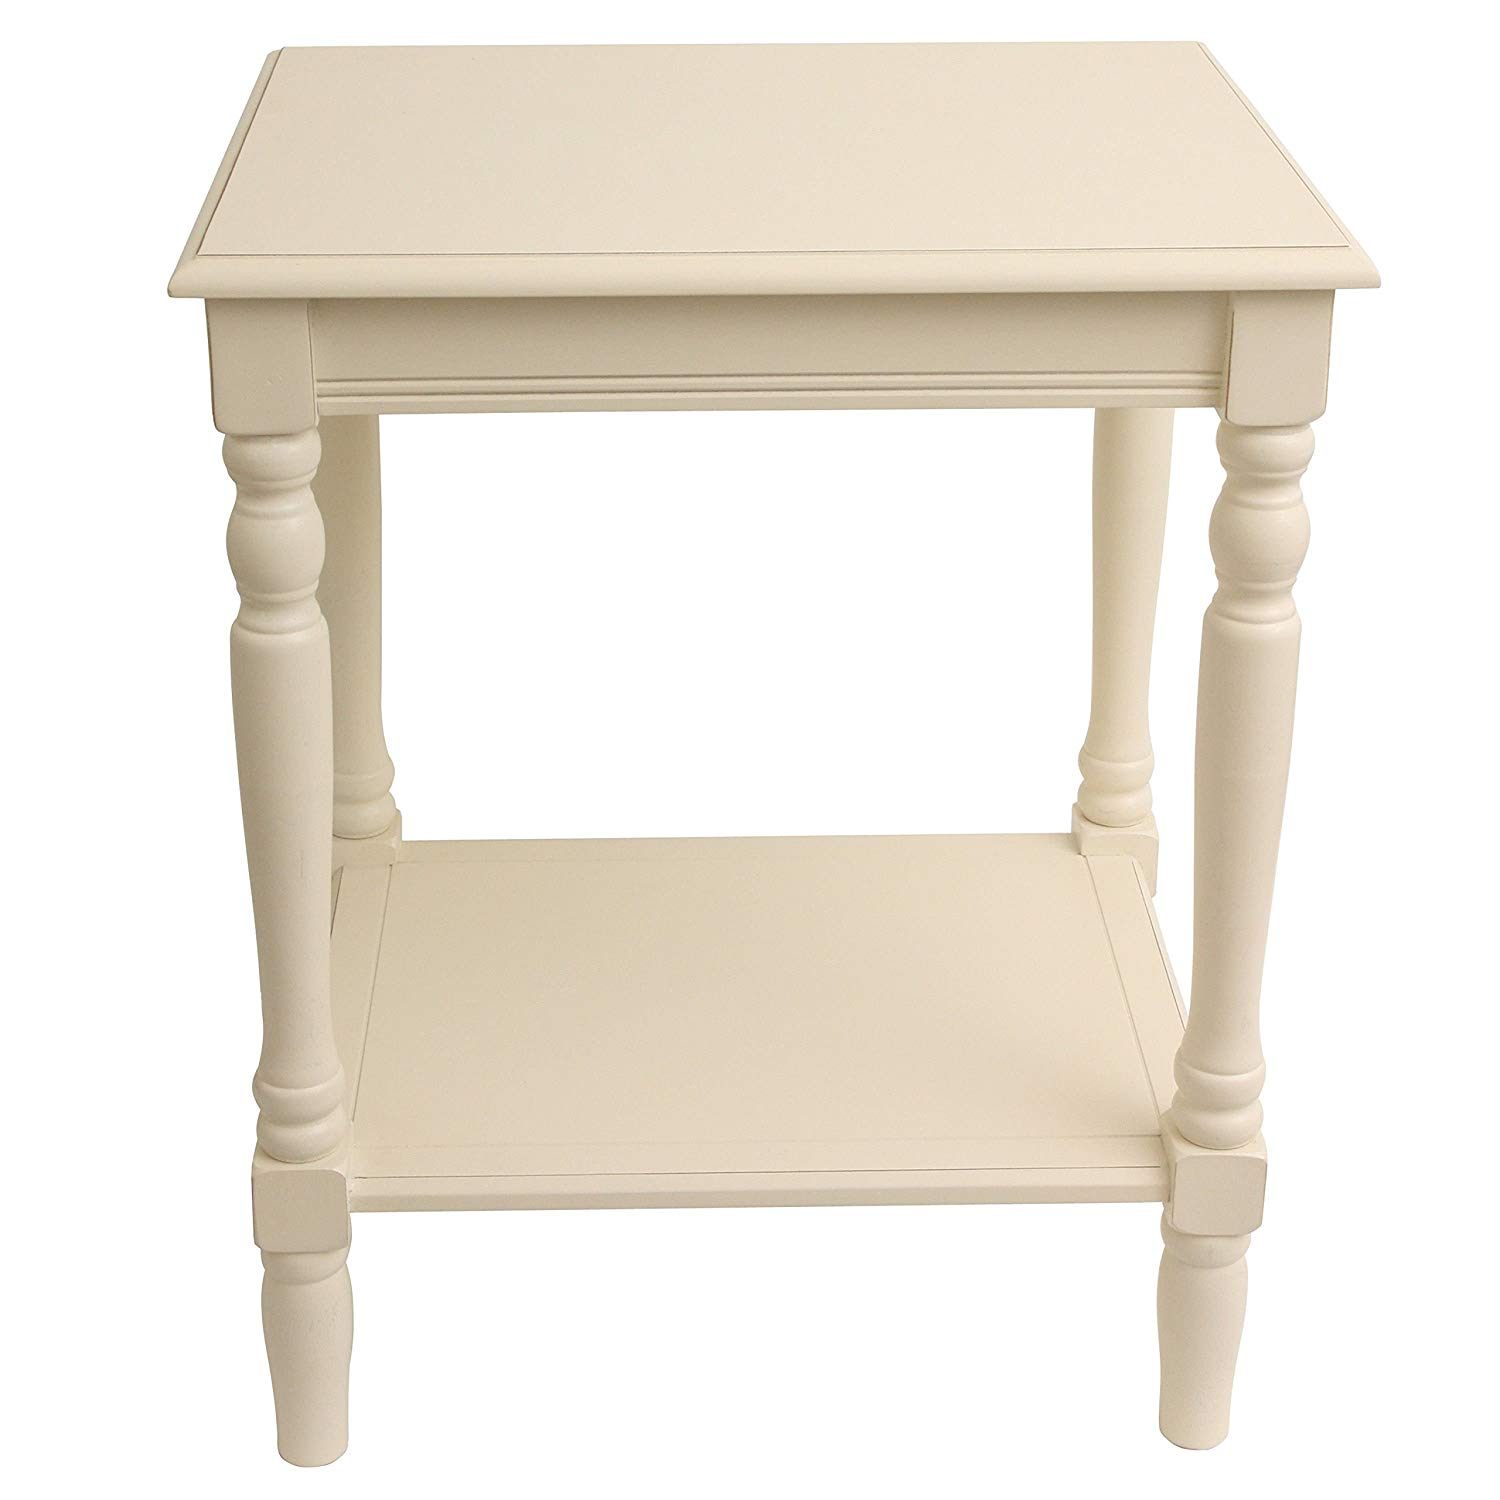 painted antique white end accent table with bottom shelf kitchen dining three drawer side distressed trestle keter pacific cool bar blue chair ott tassel garland target furniture